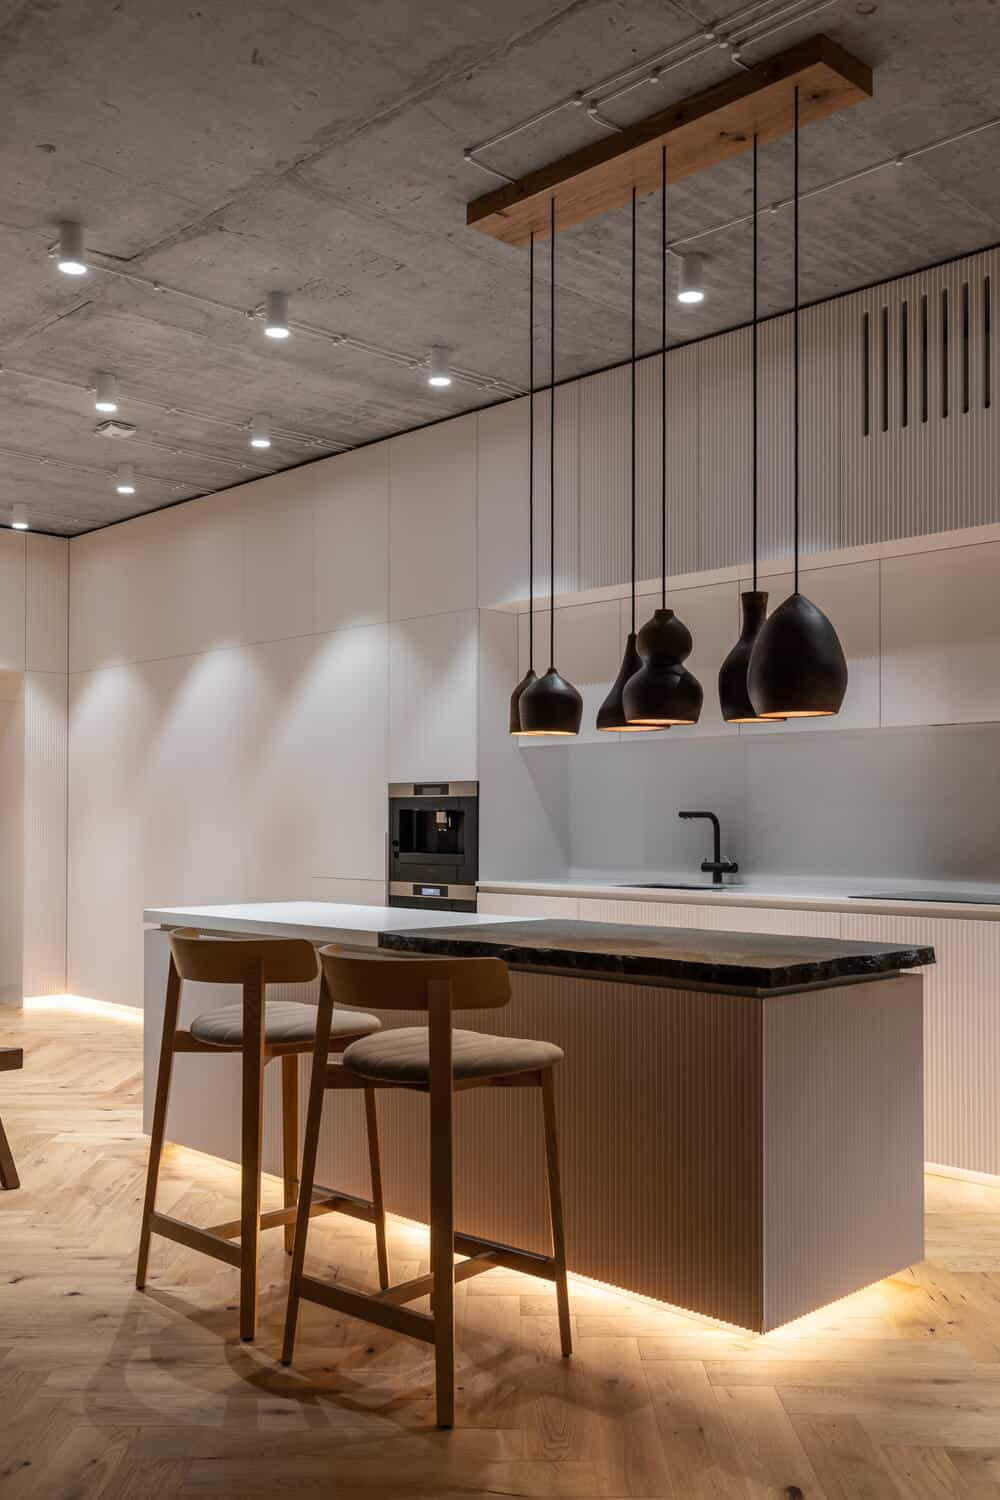 This is a close look at the minimalist kitchen that has structures and cabinetry matching the walls and ceiling that hangs a row of pendant lights over the rustic countertop.